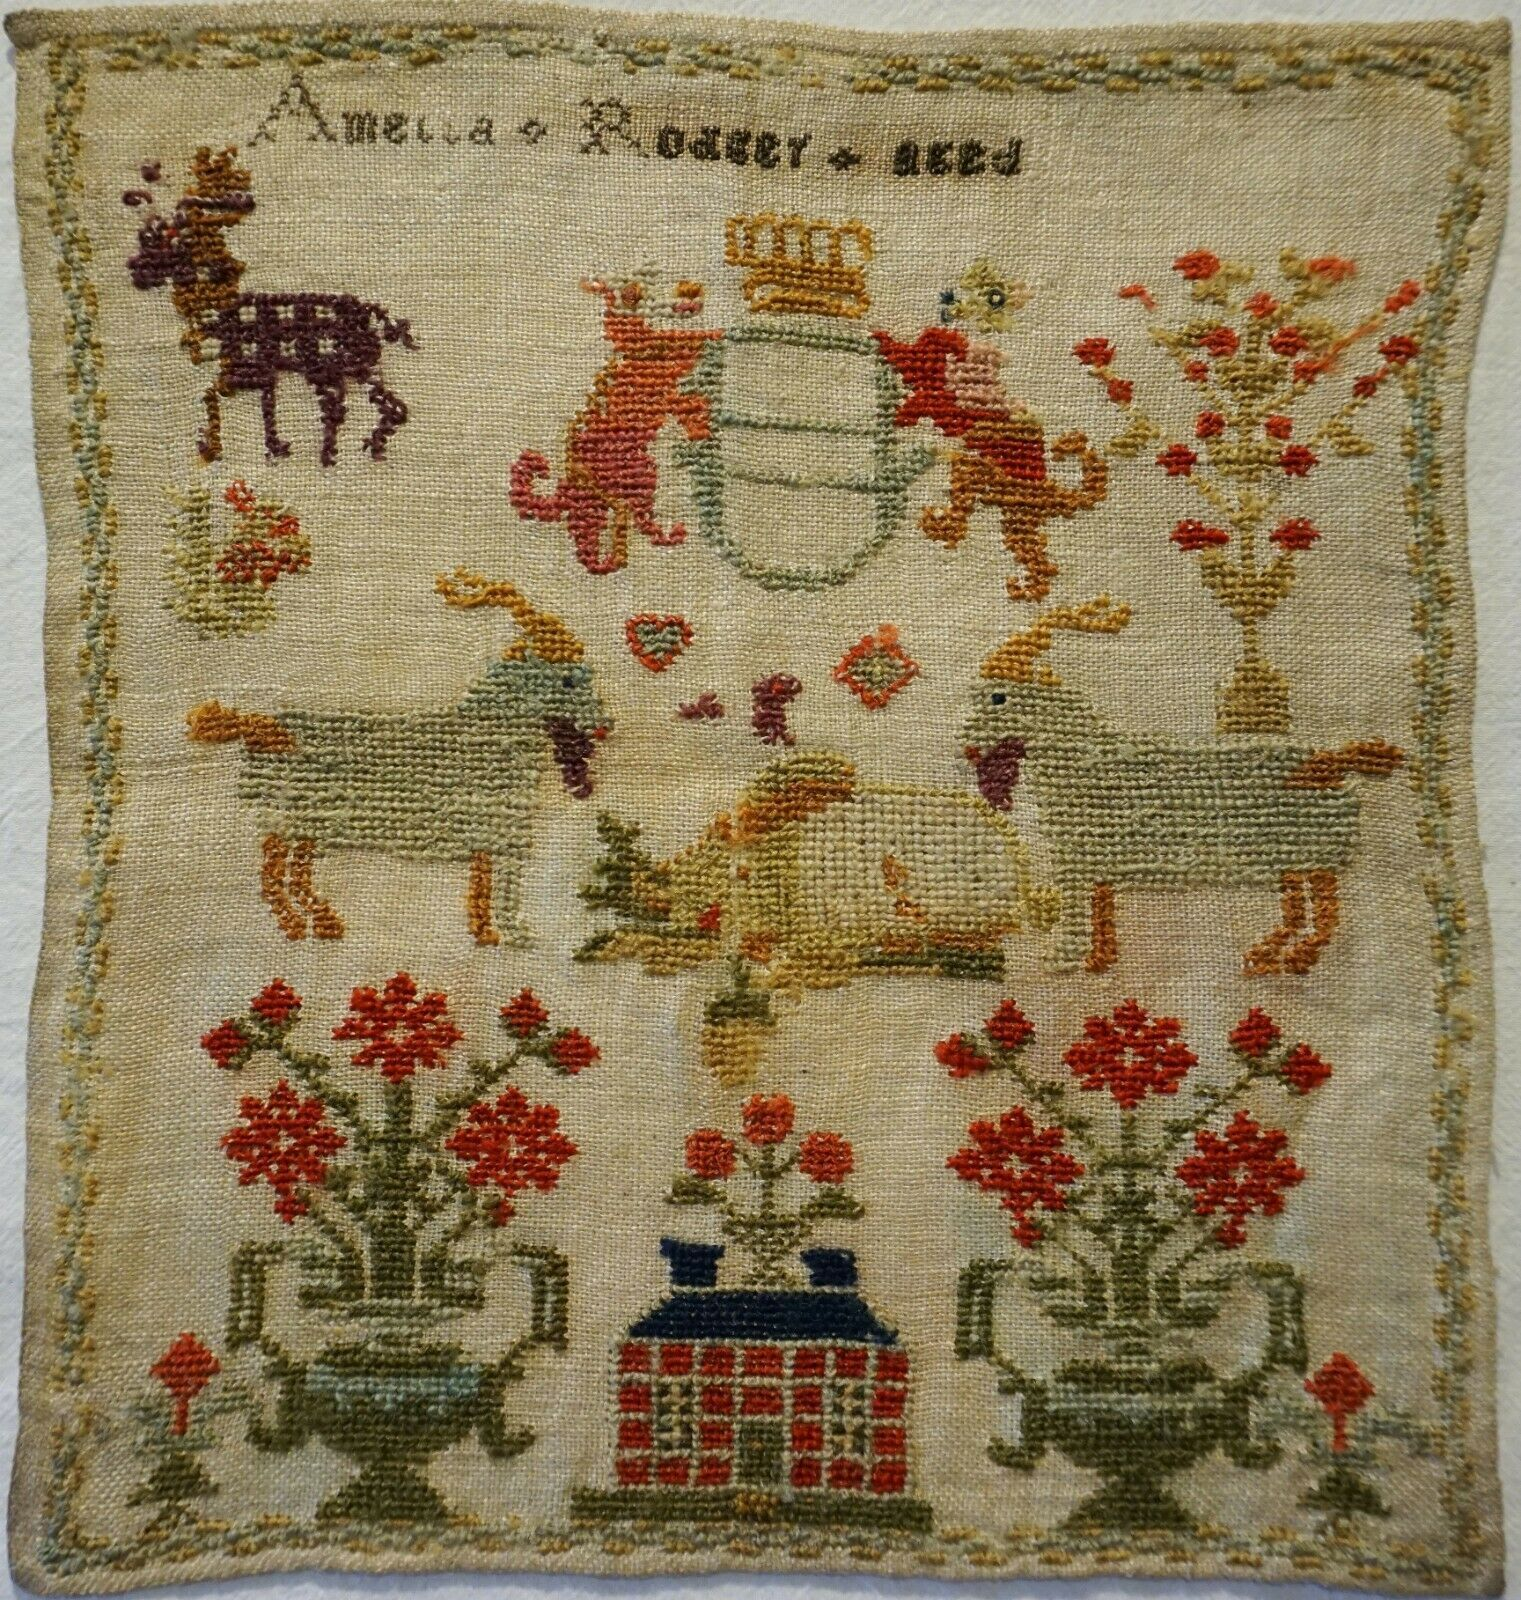 Small Early 19th Century Red House Goats Sampler By Amelia Rodgers C 1830 404 49 Antique Quilts 19th Century Blue Roof